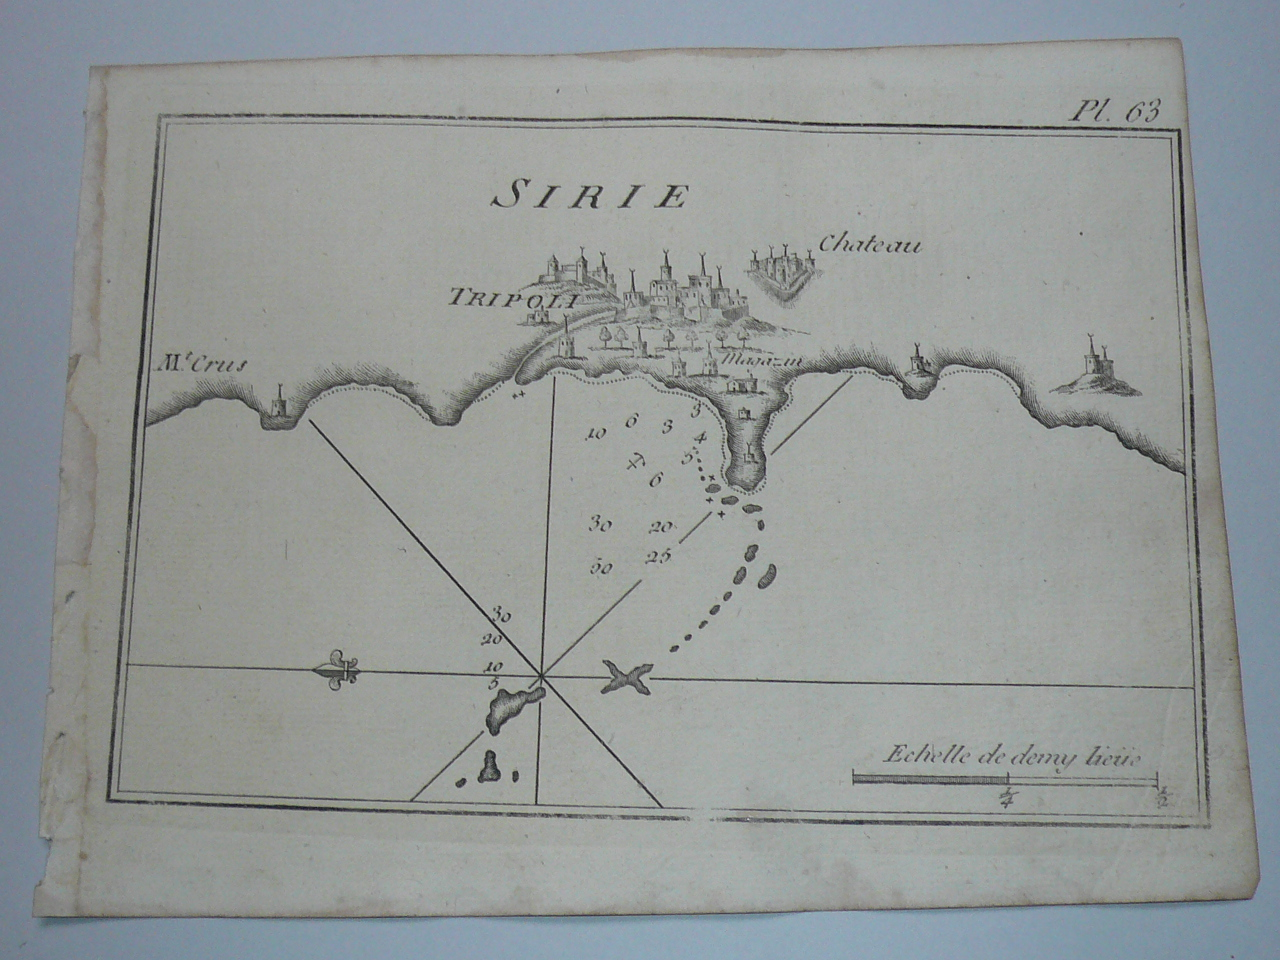 Tripoli,nautical map,anno 1795, Roux Josephe